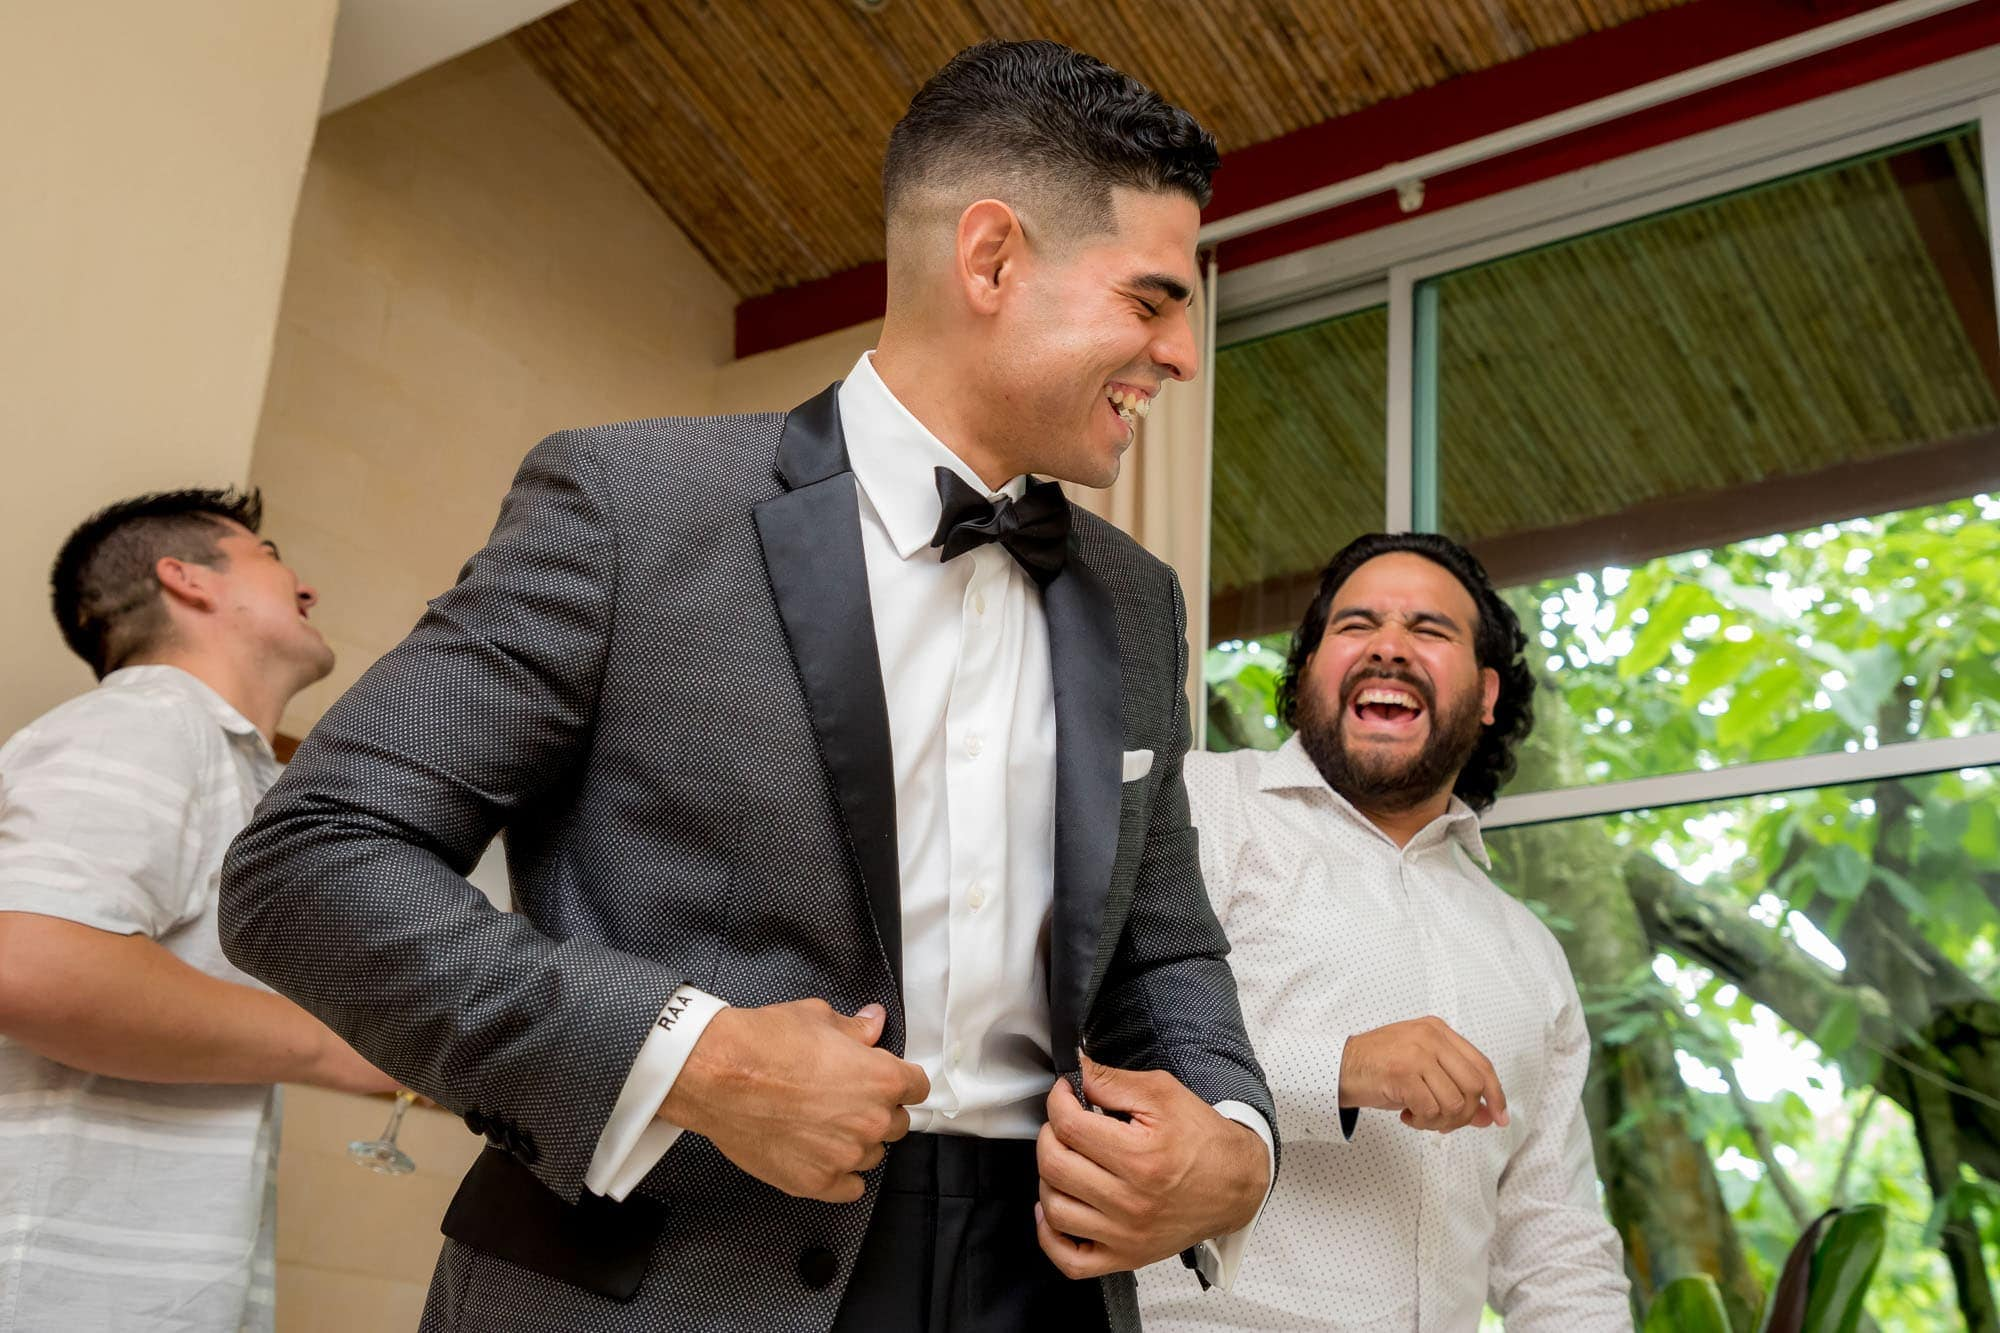 The groom laughing with a friend